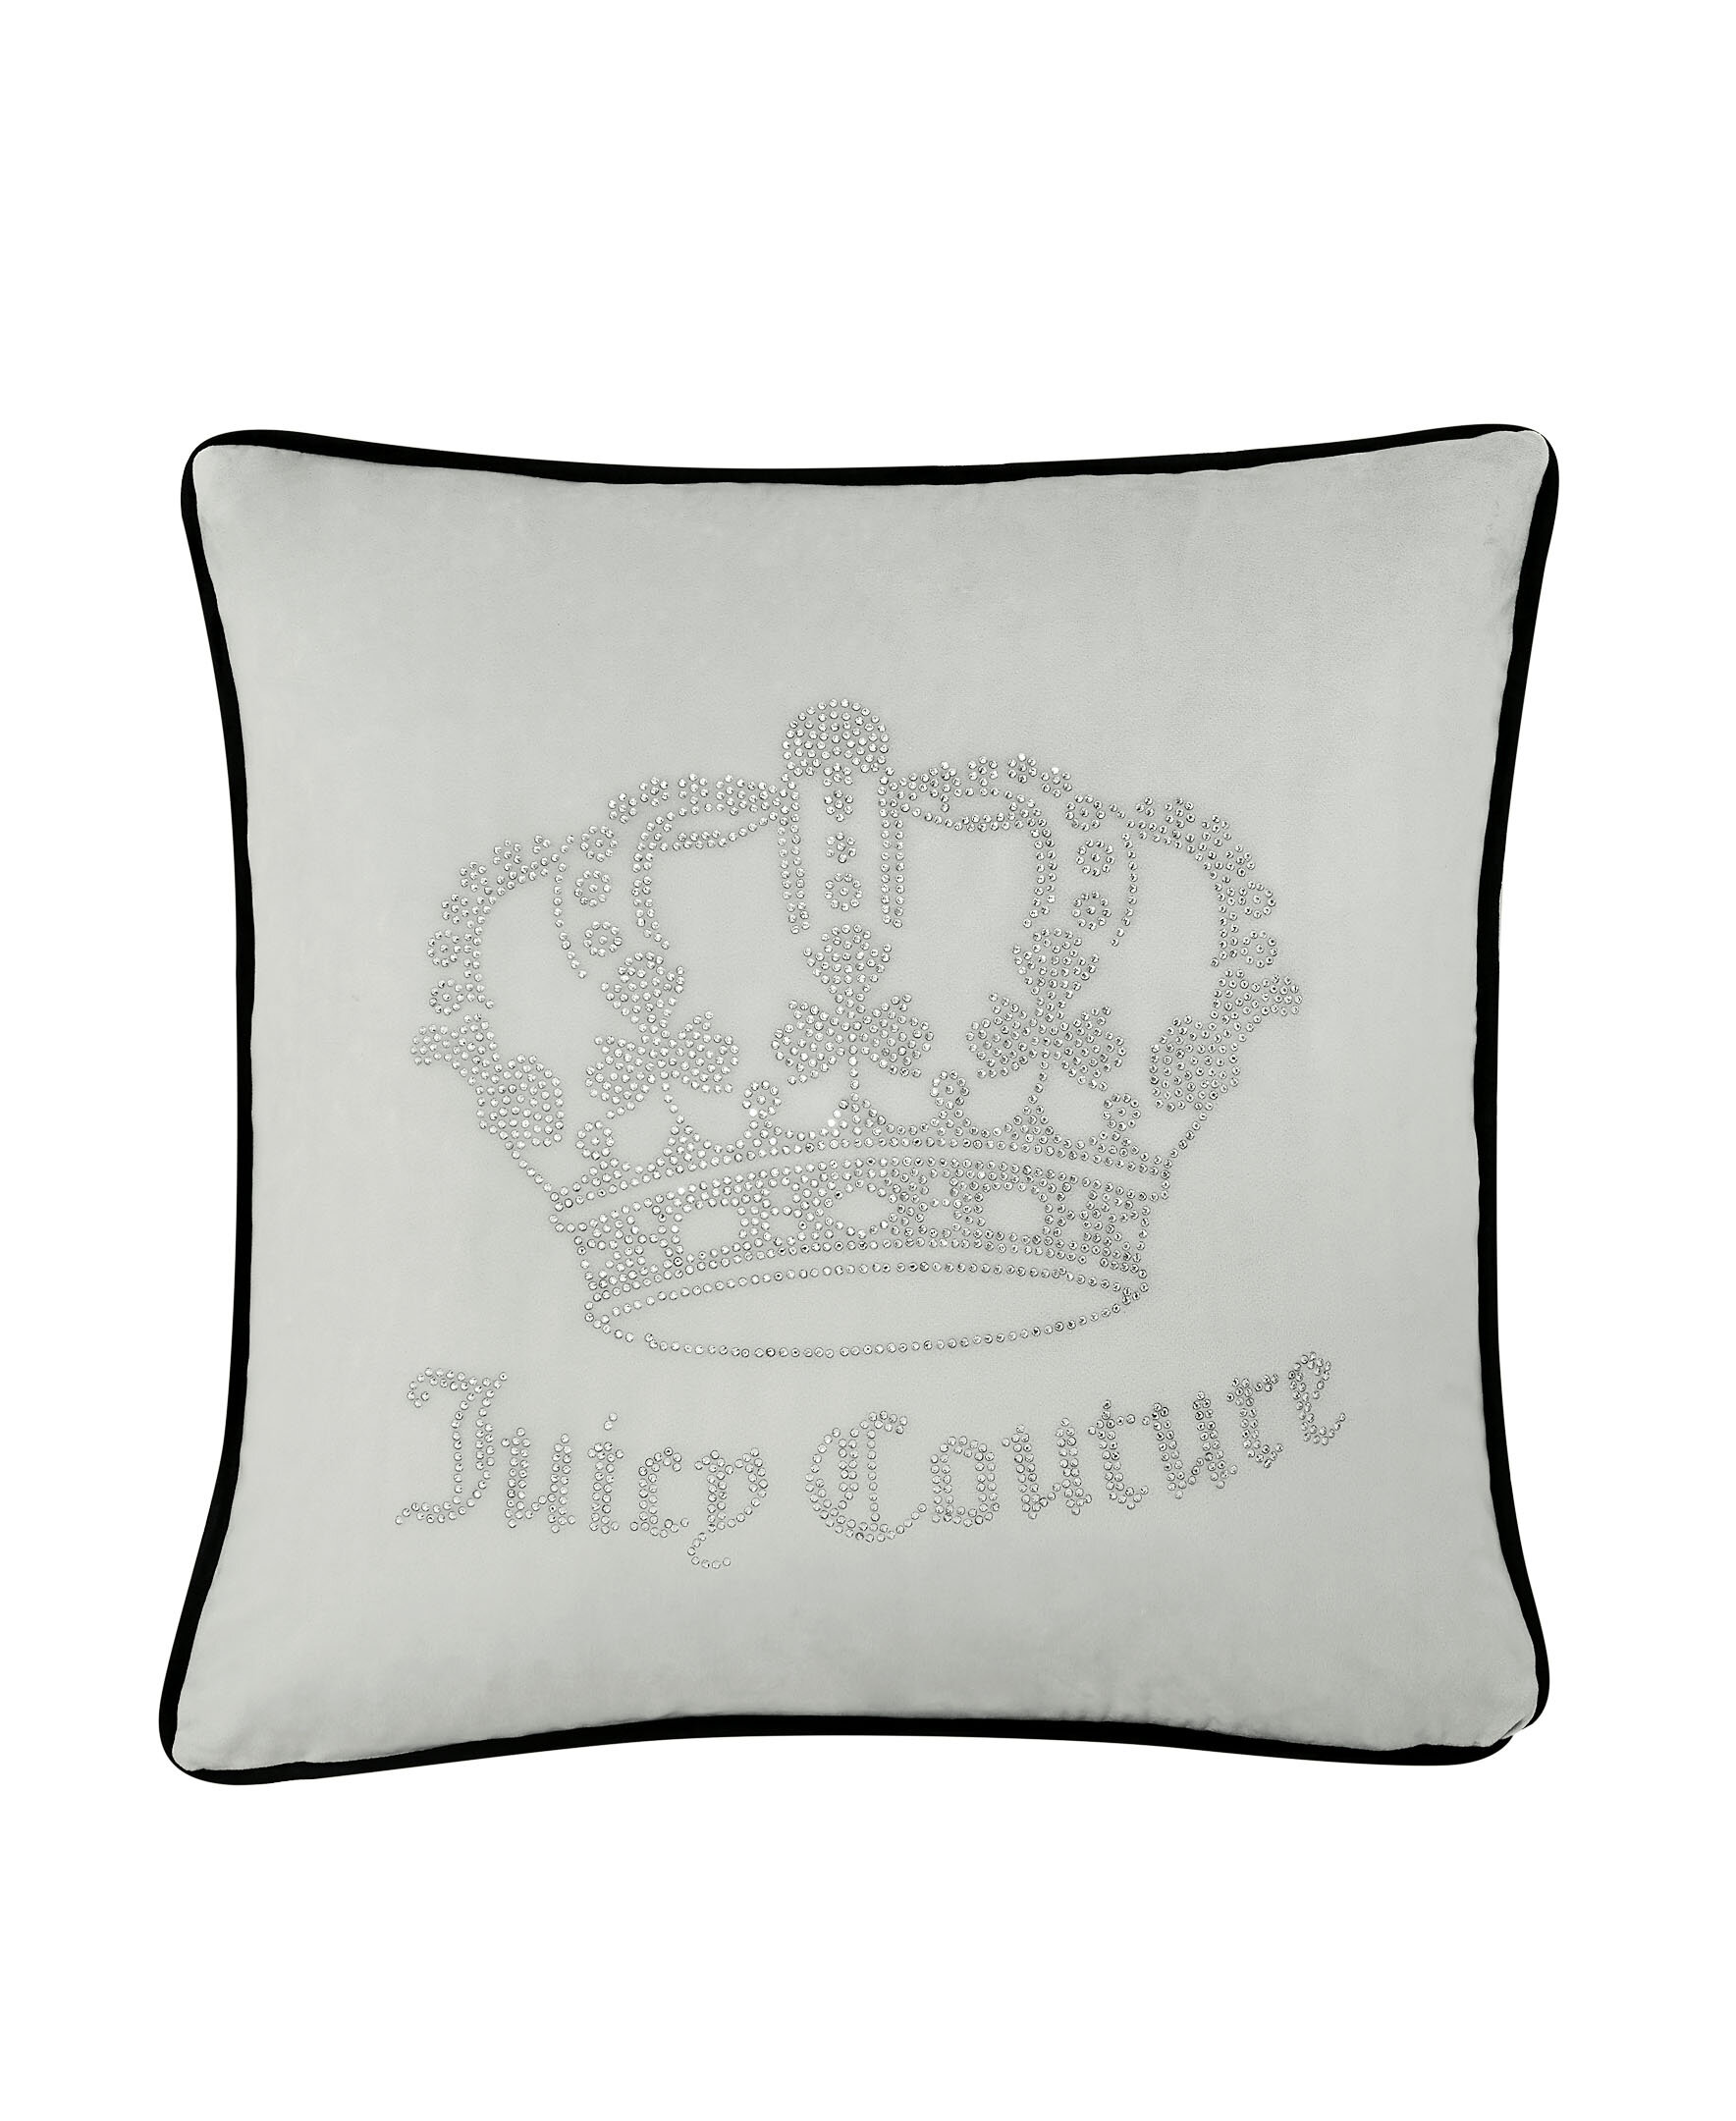 Juicy Couture Gothic Square Pillow Cover Insert Wayfair